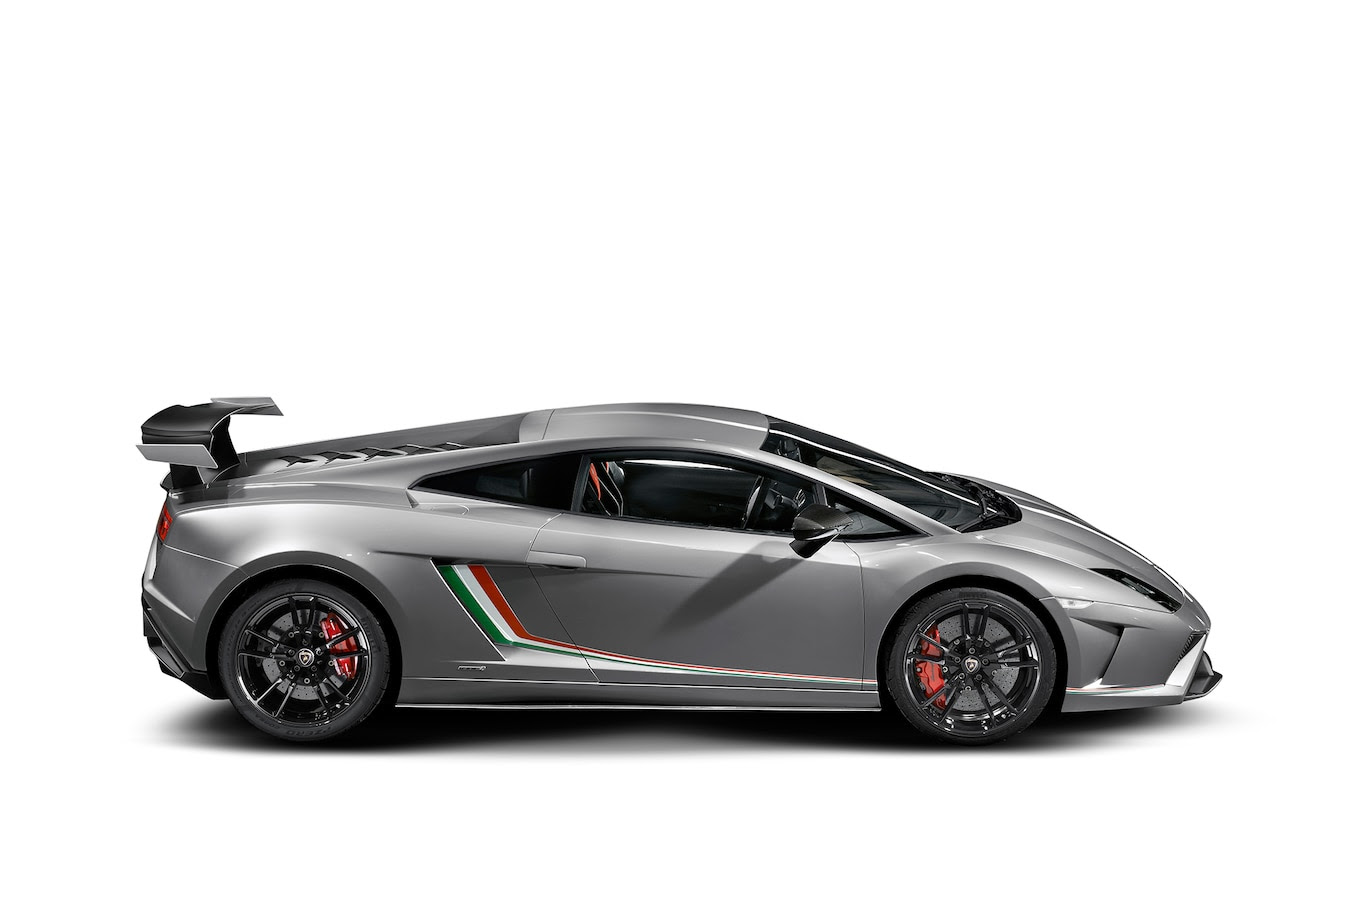 2014 Lamborghini Gallardo Reviews and Rating  Motor Trend